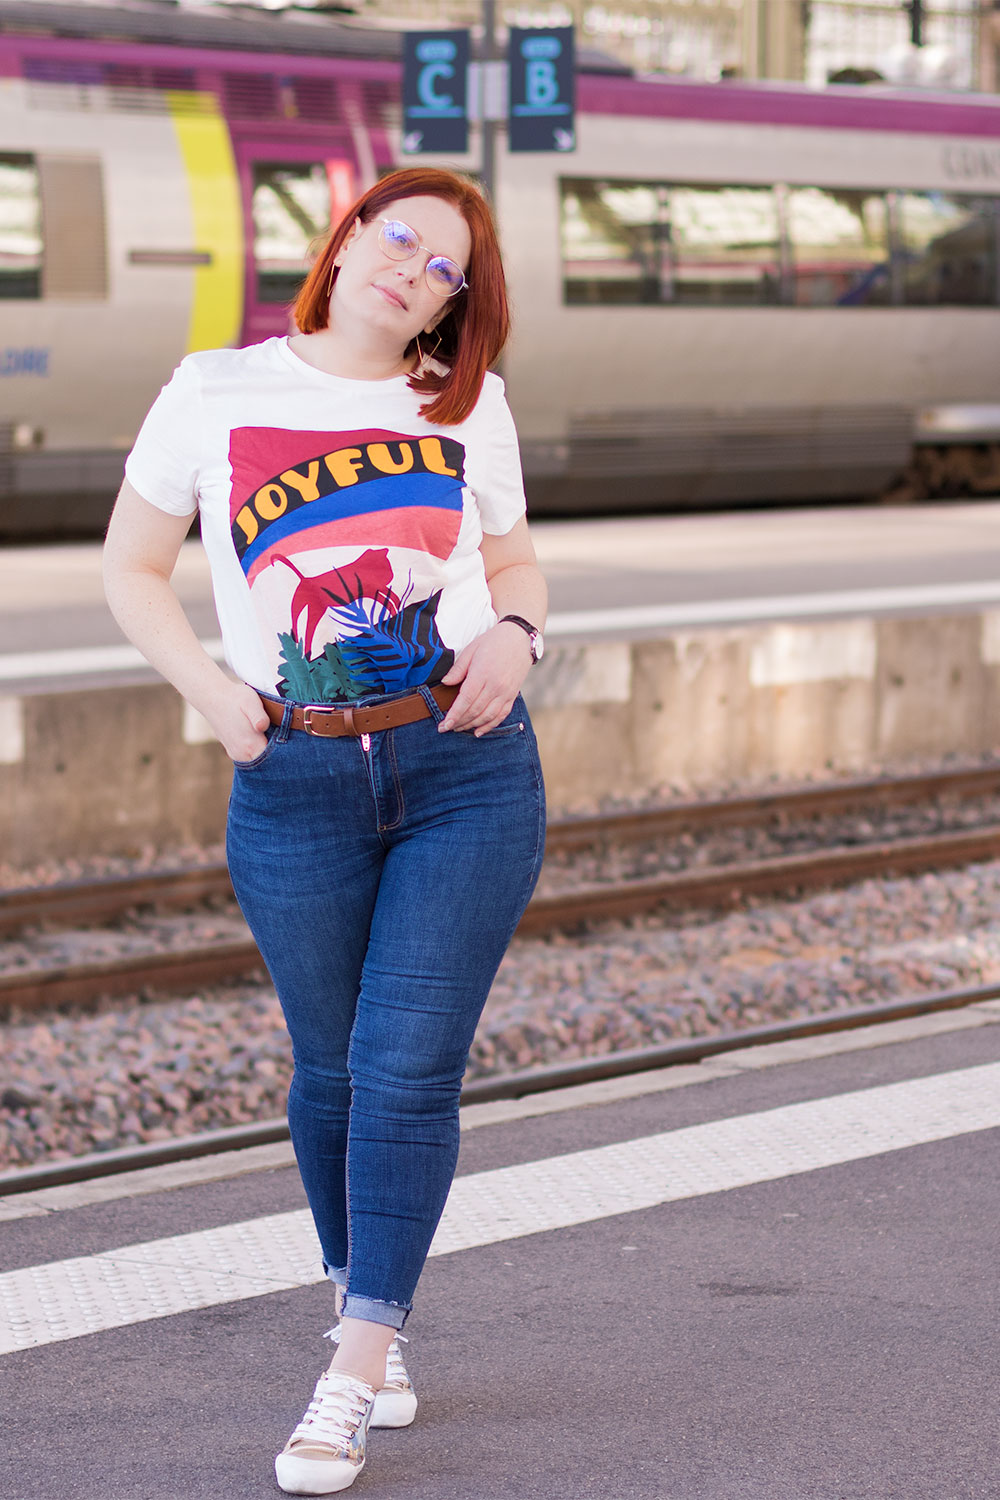 Look en t-shirt Joyful loose Kiabi, devant le train